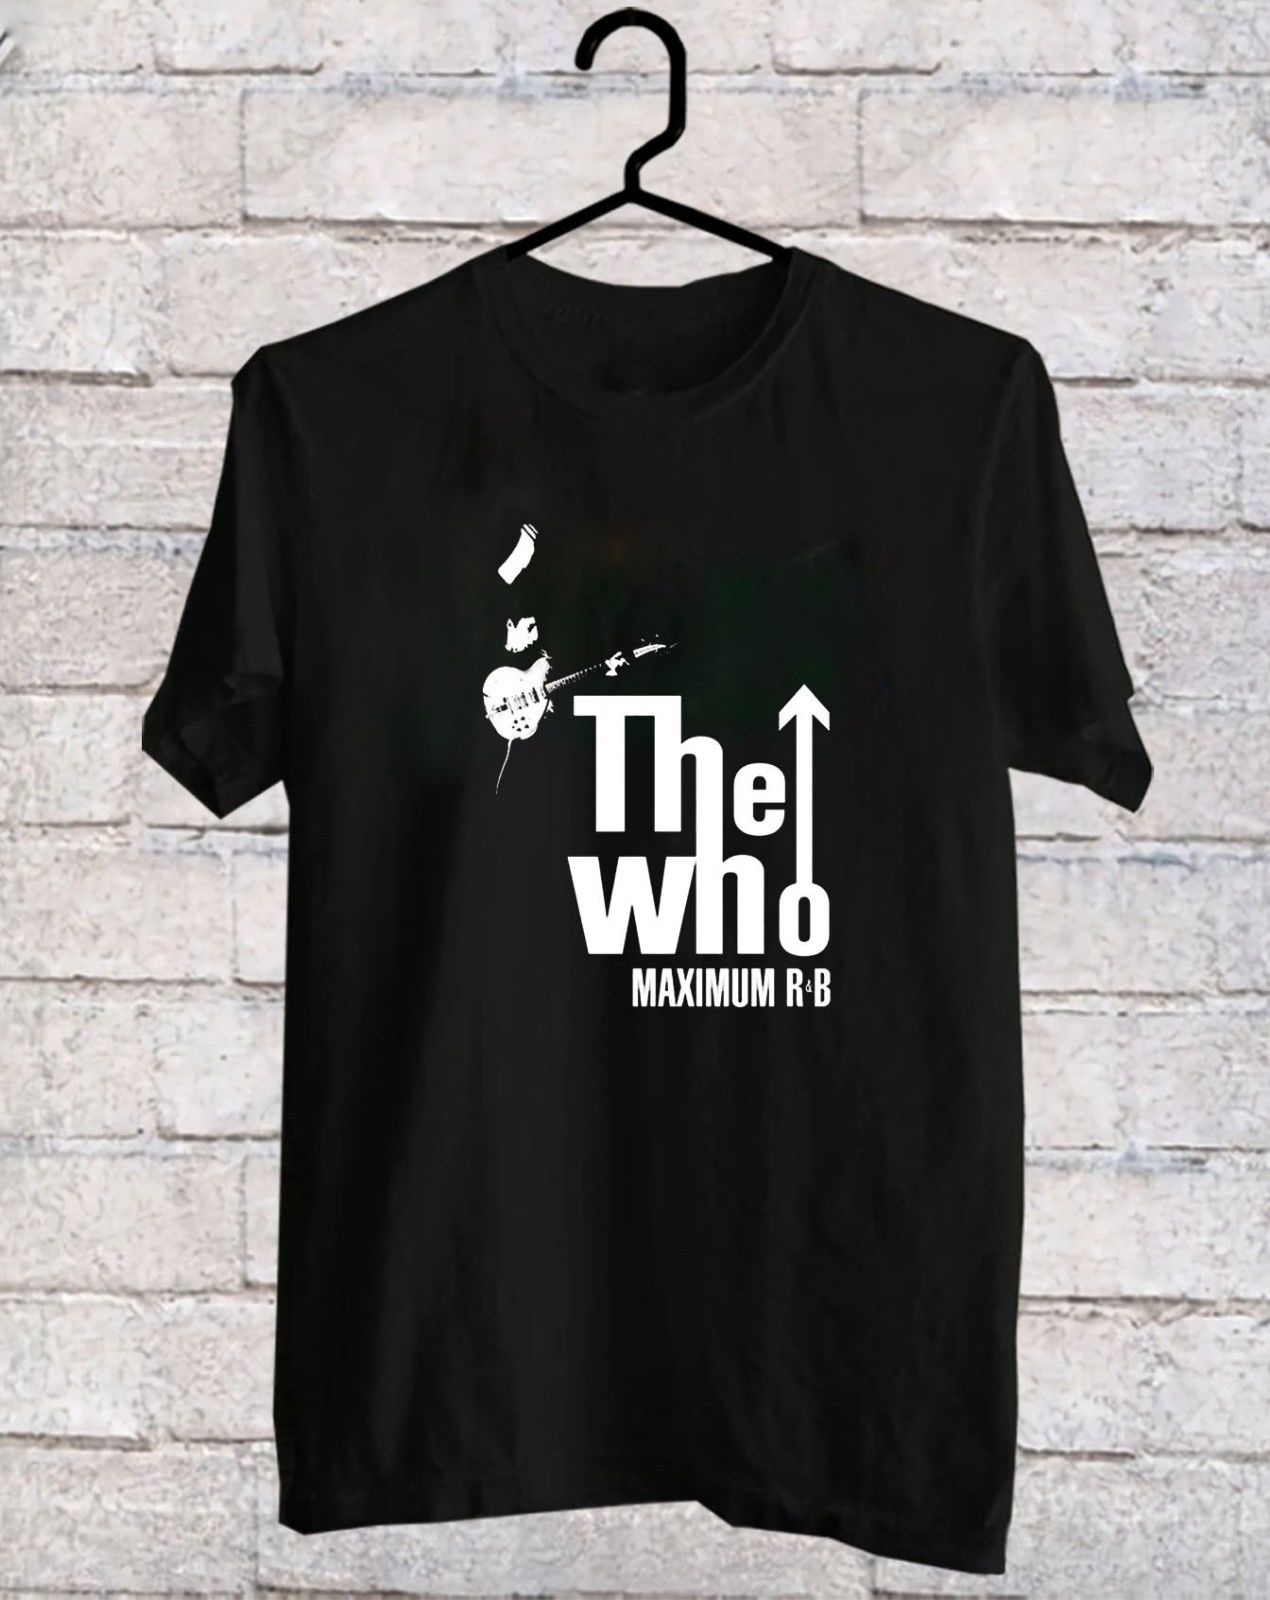 The Who- Maximum R&B Black T-Shirt tee shirt S-3XL